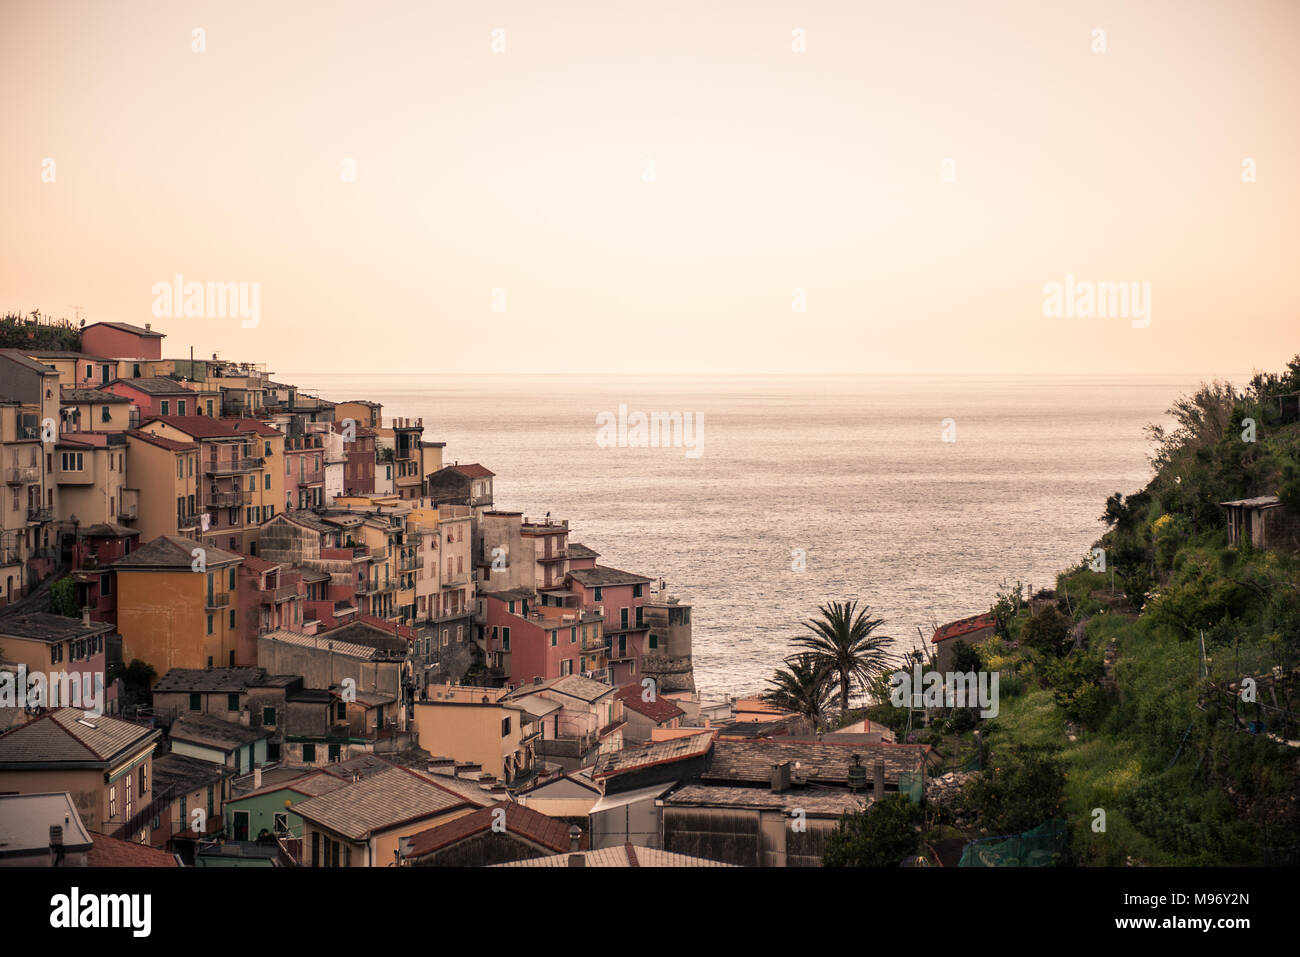 the italian city of Manarola - Stock Image